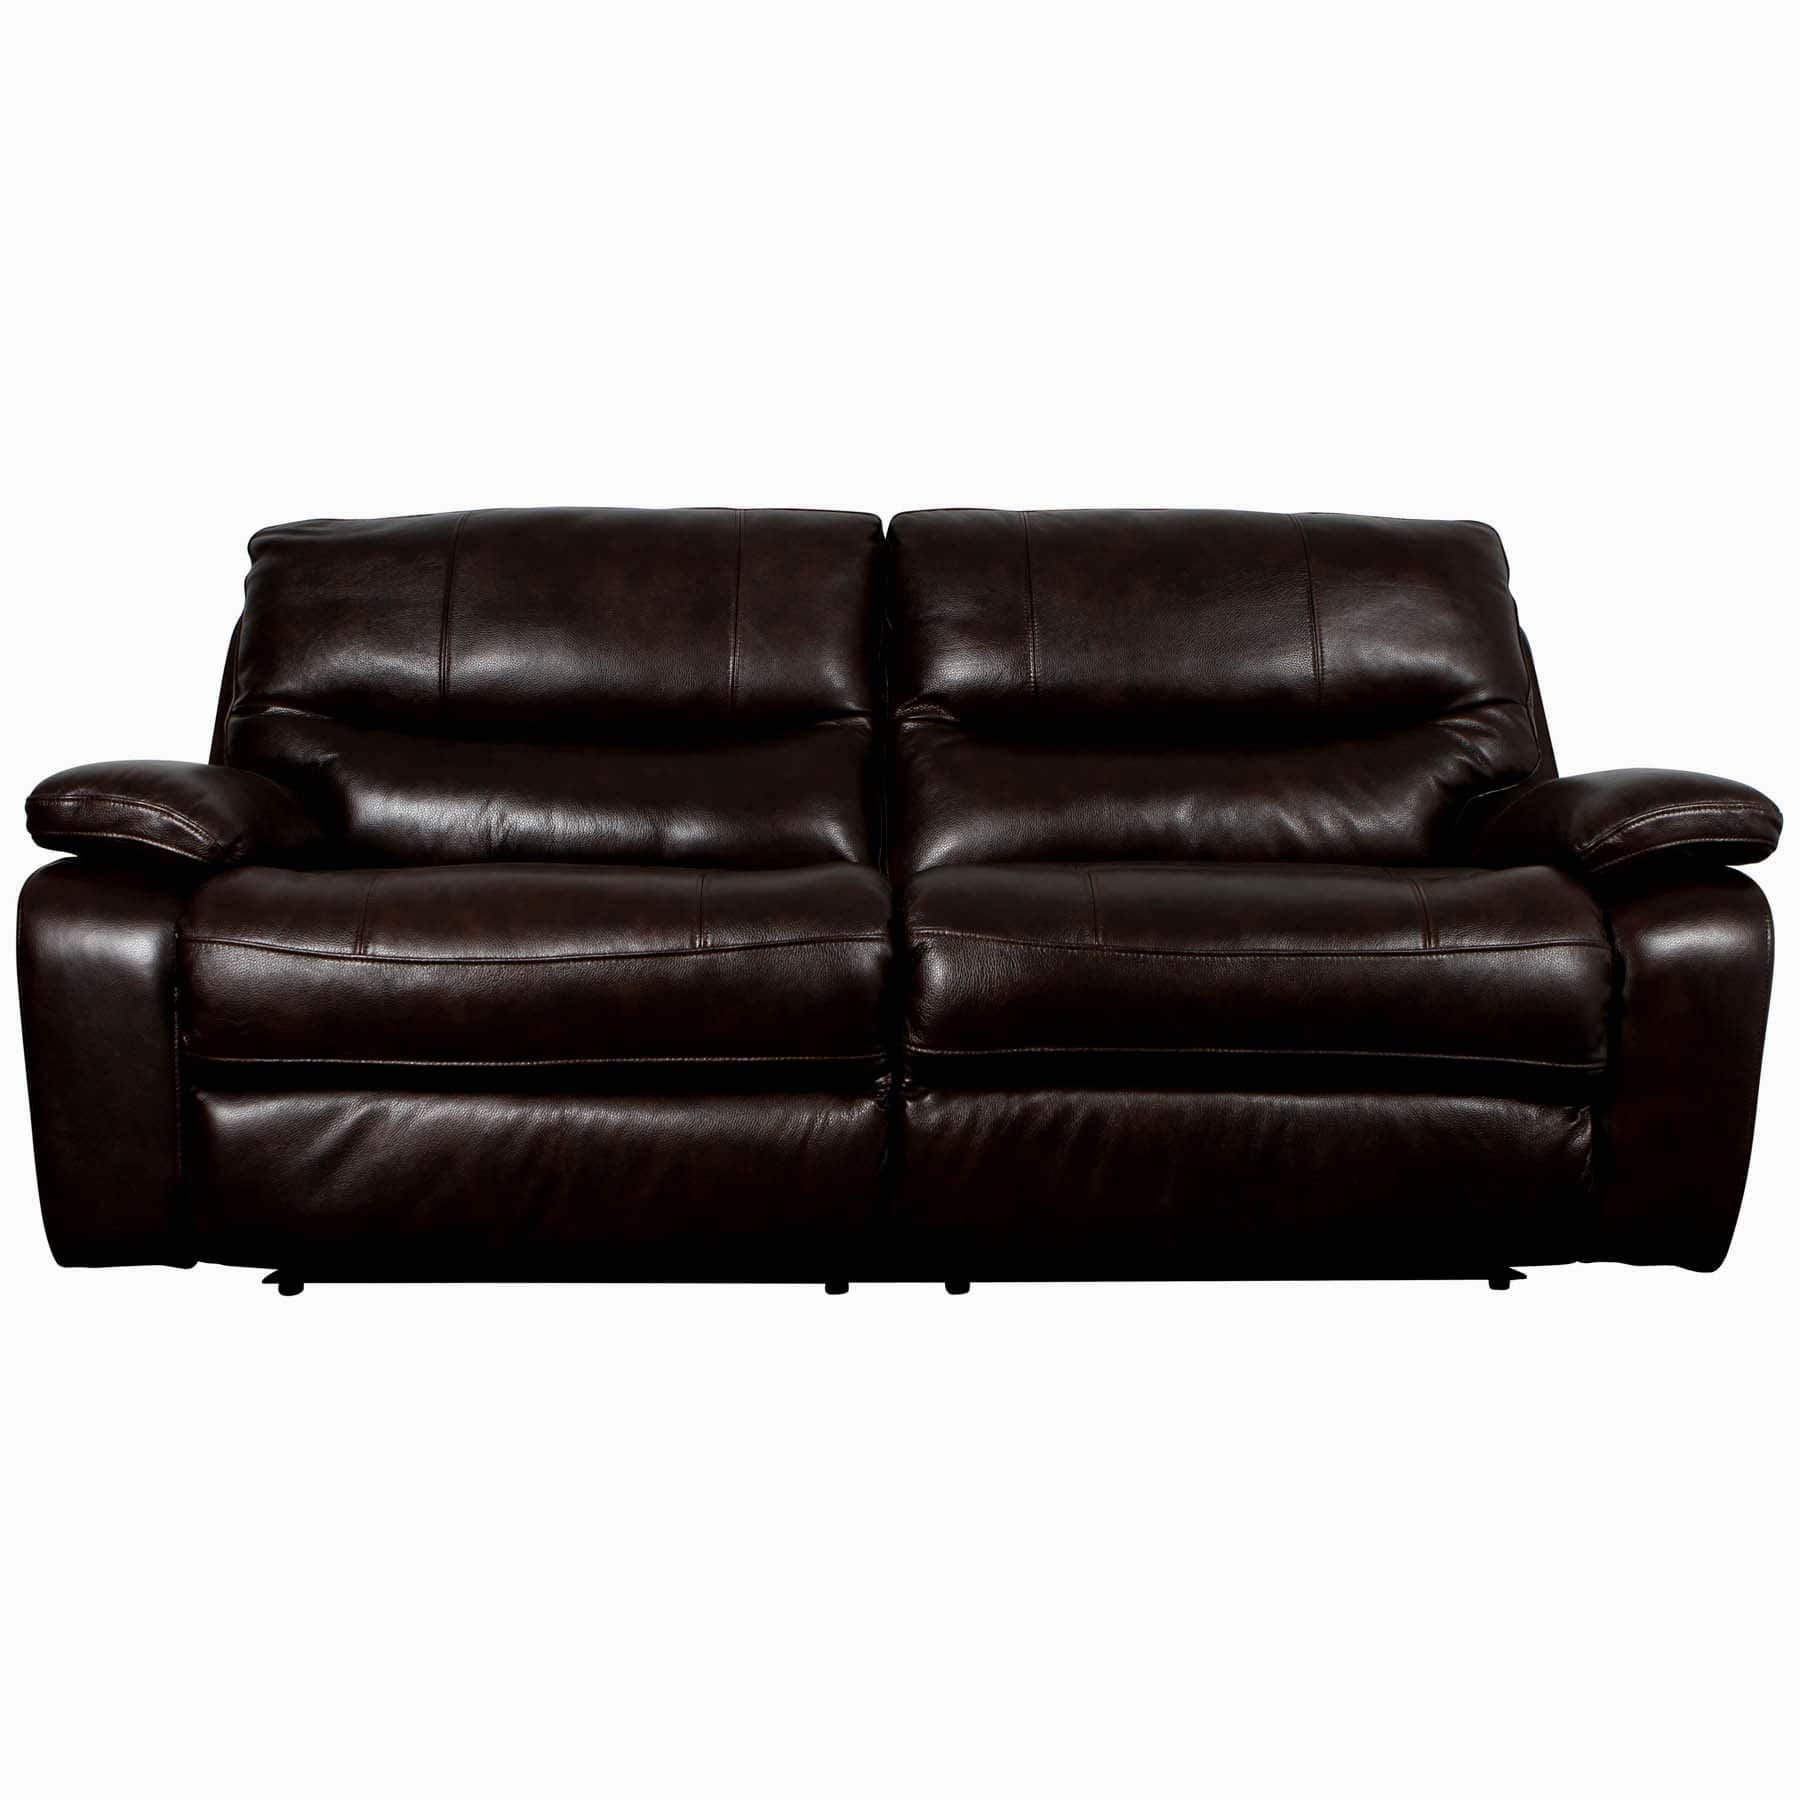 Leather Loveseat For Sale: Loccie Better Homes Gardens Ideas